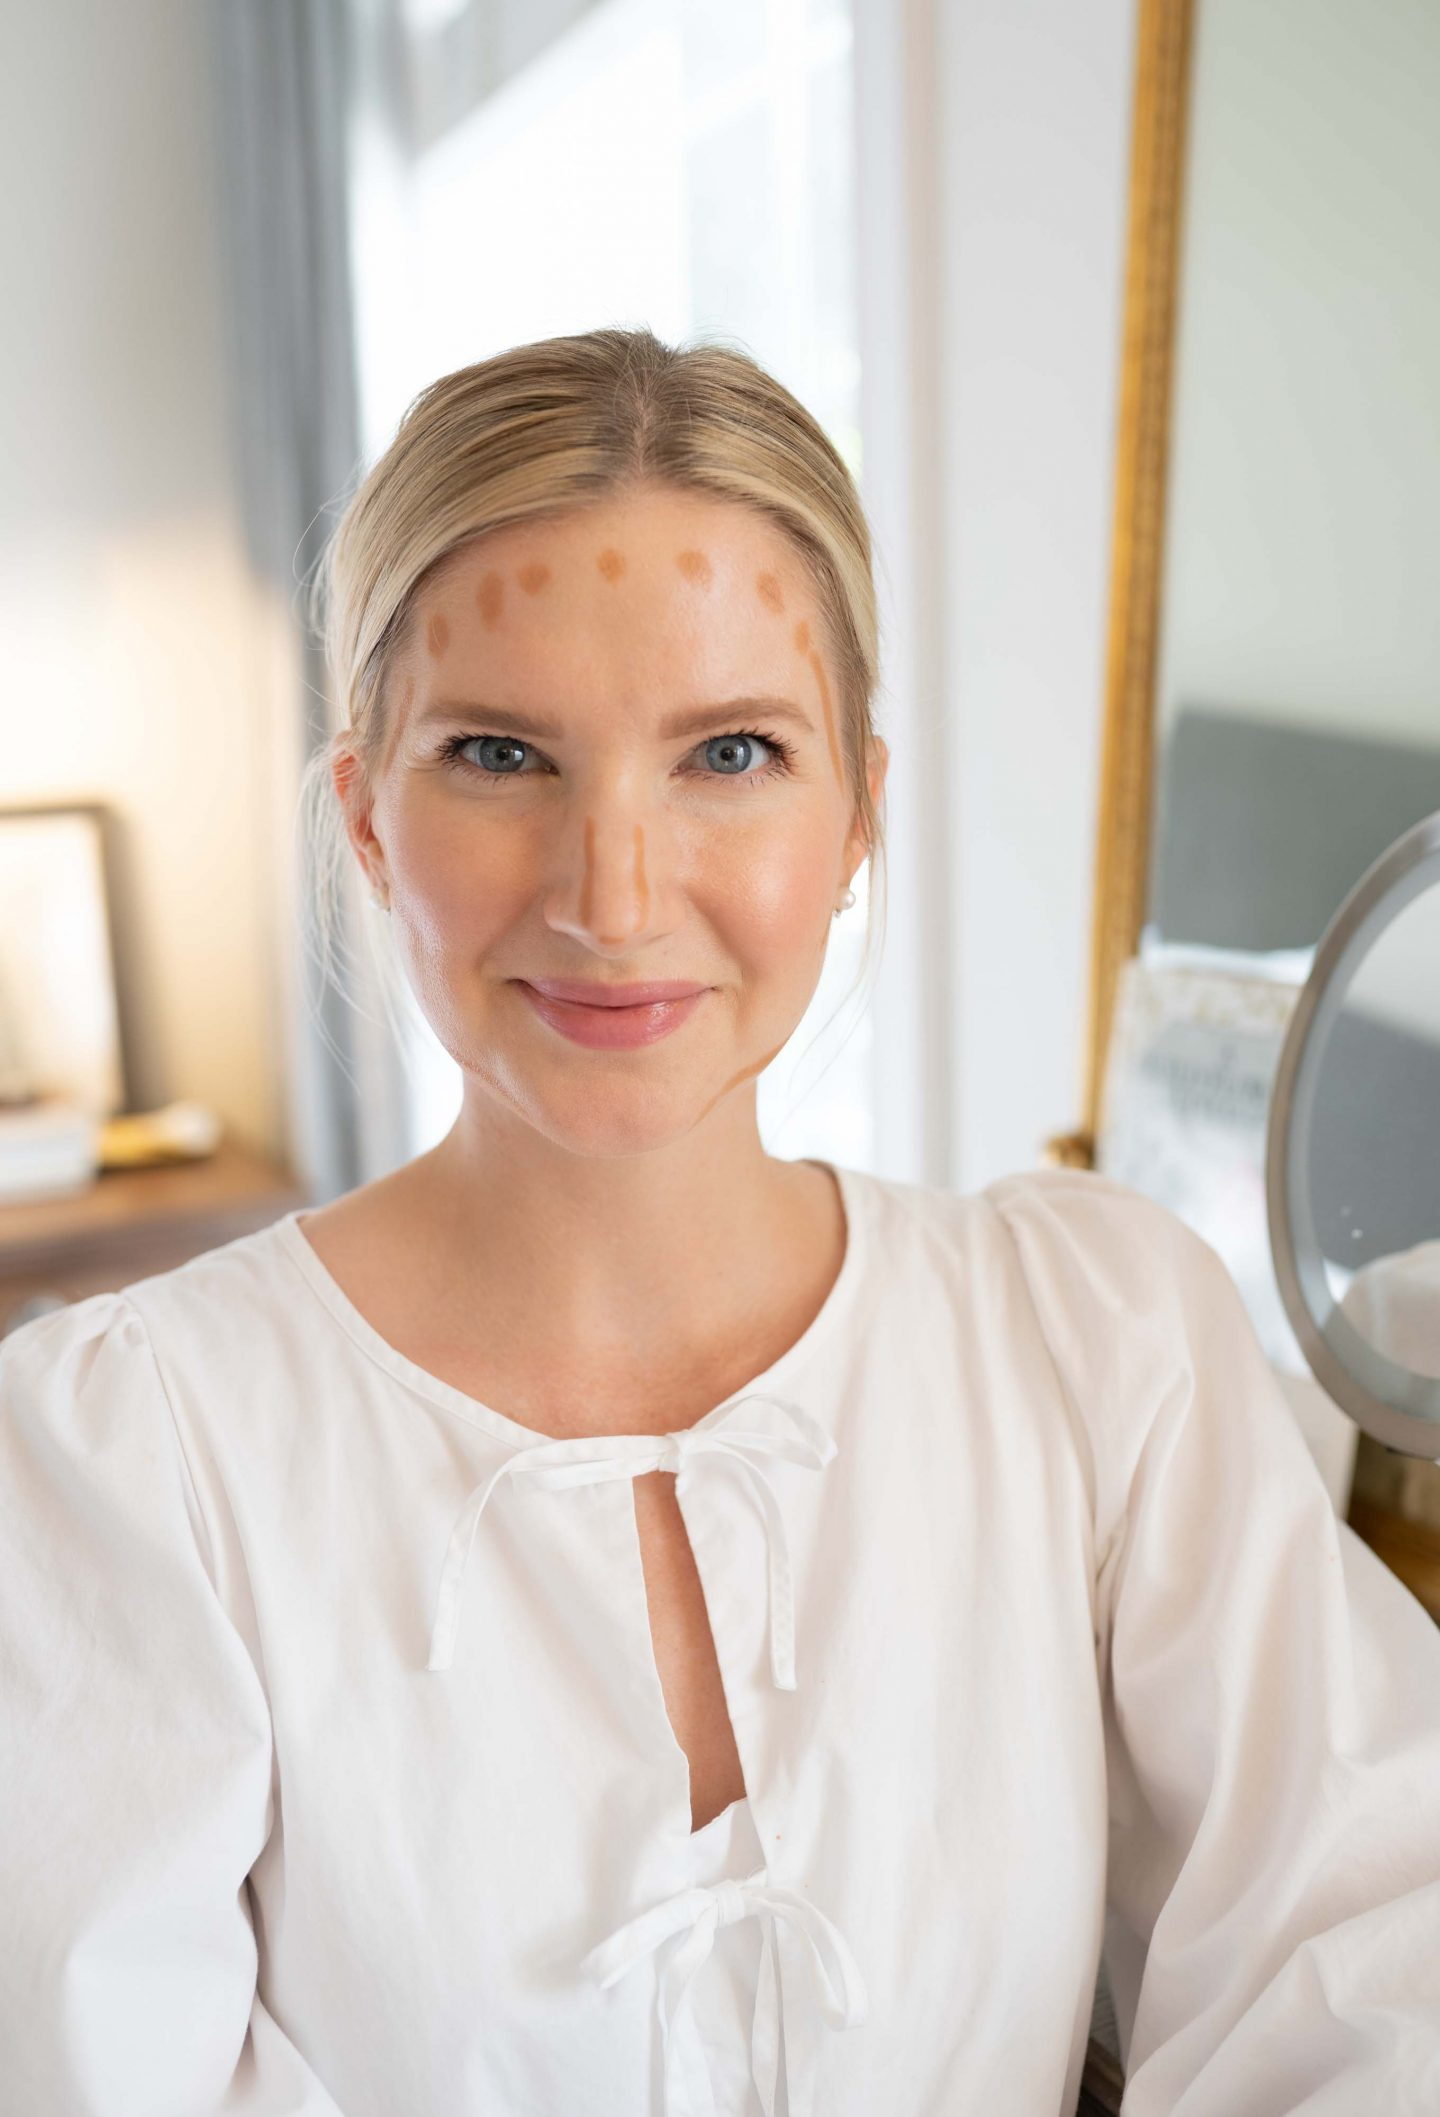 How to Use Persona Bronzing Stick